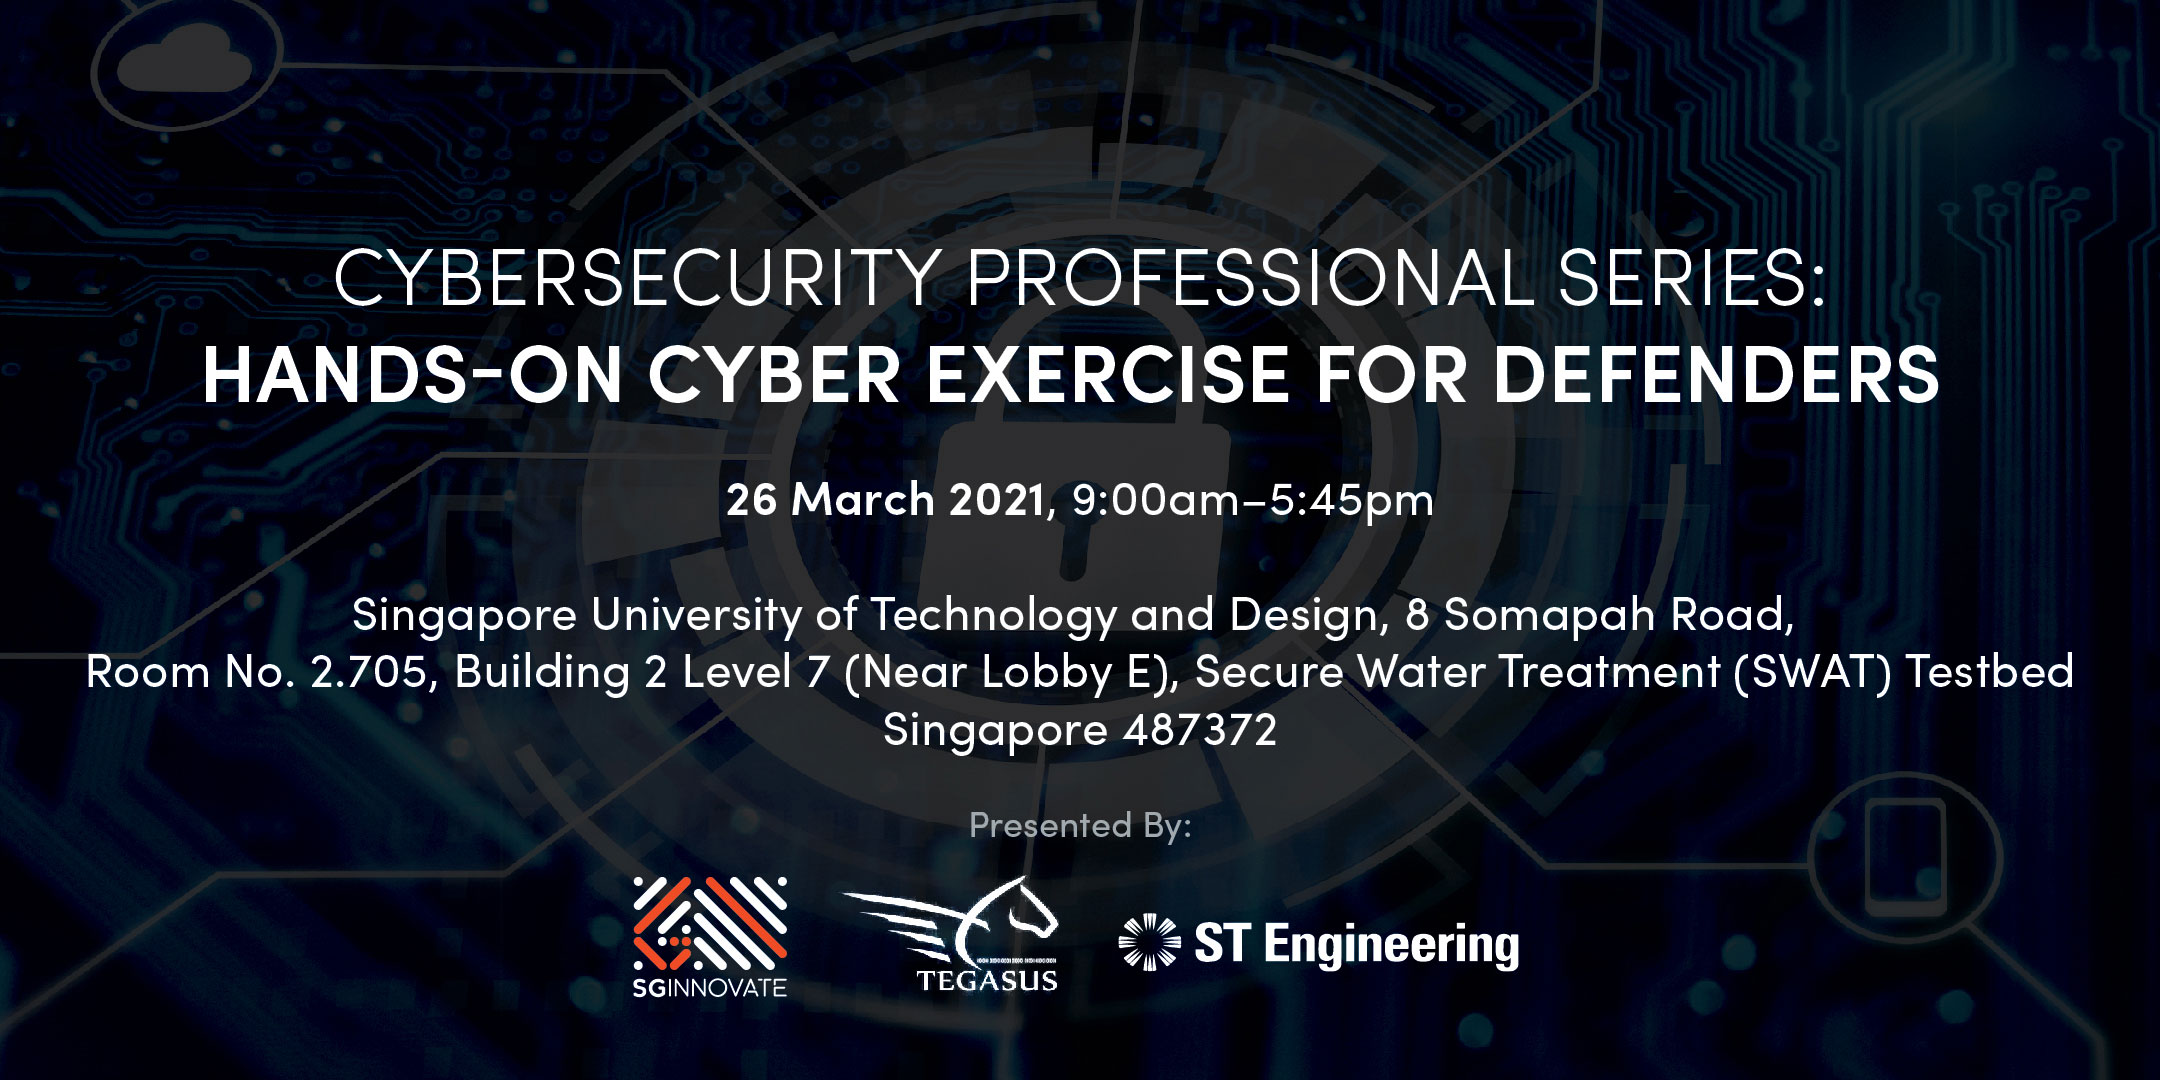 Hands-on Cyber Exercise for Defenders